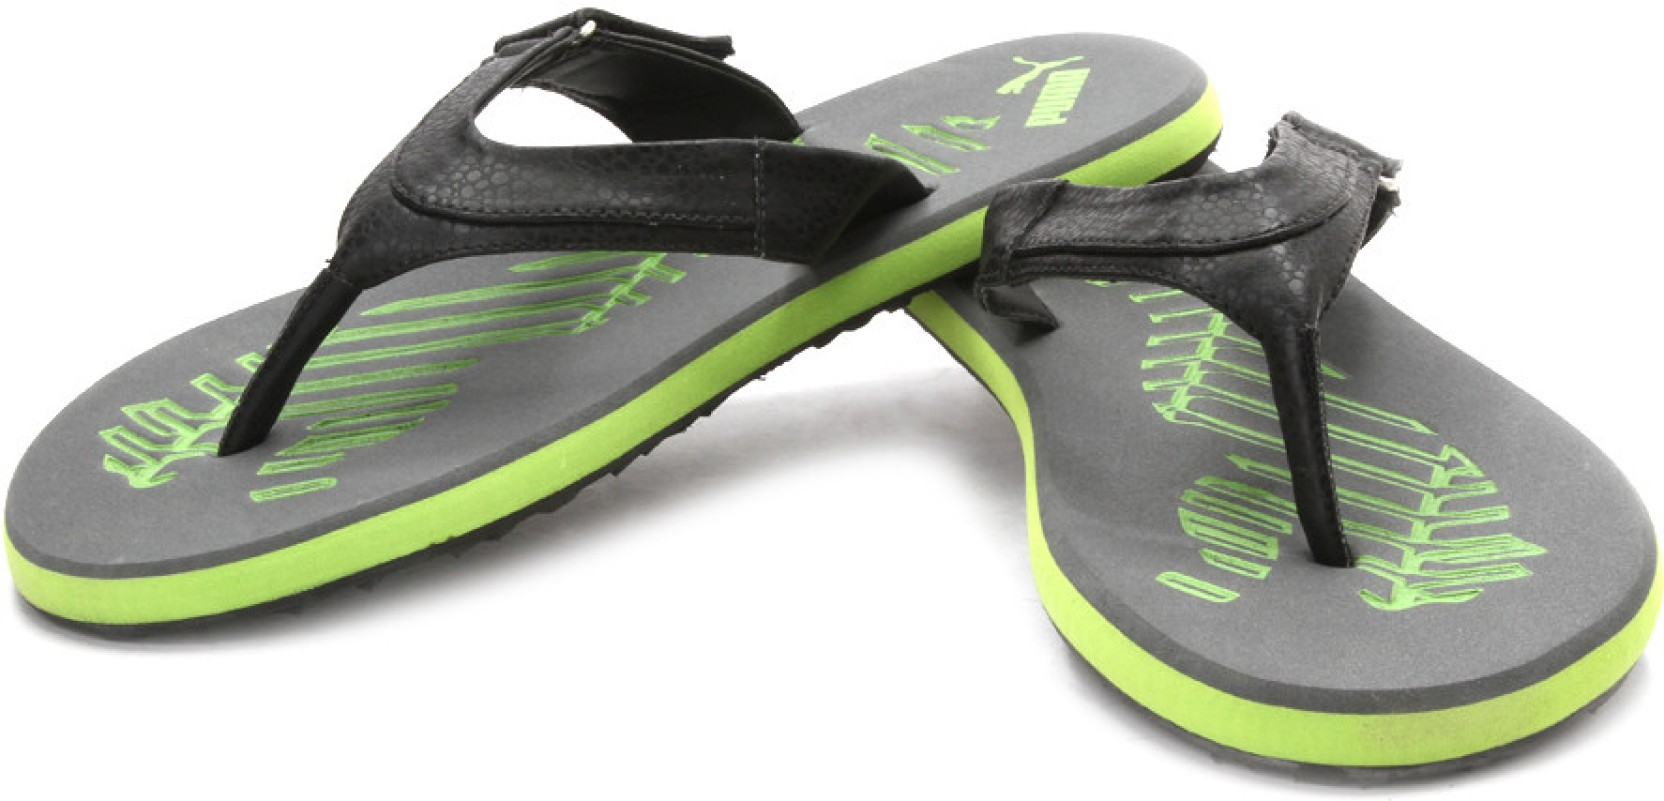 puma breeze 4 ind flip flops buy steel gray macaw green color puma breeze 4 ind flip flops. Black Bedroom Furniture Sets. Home Design Ideas